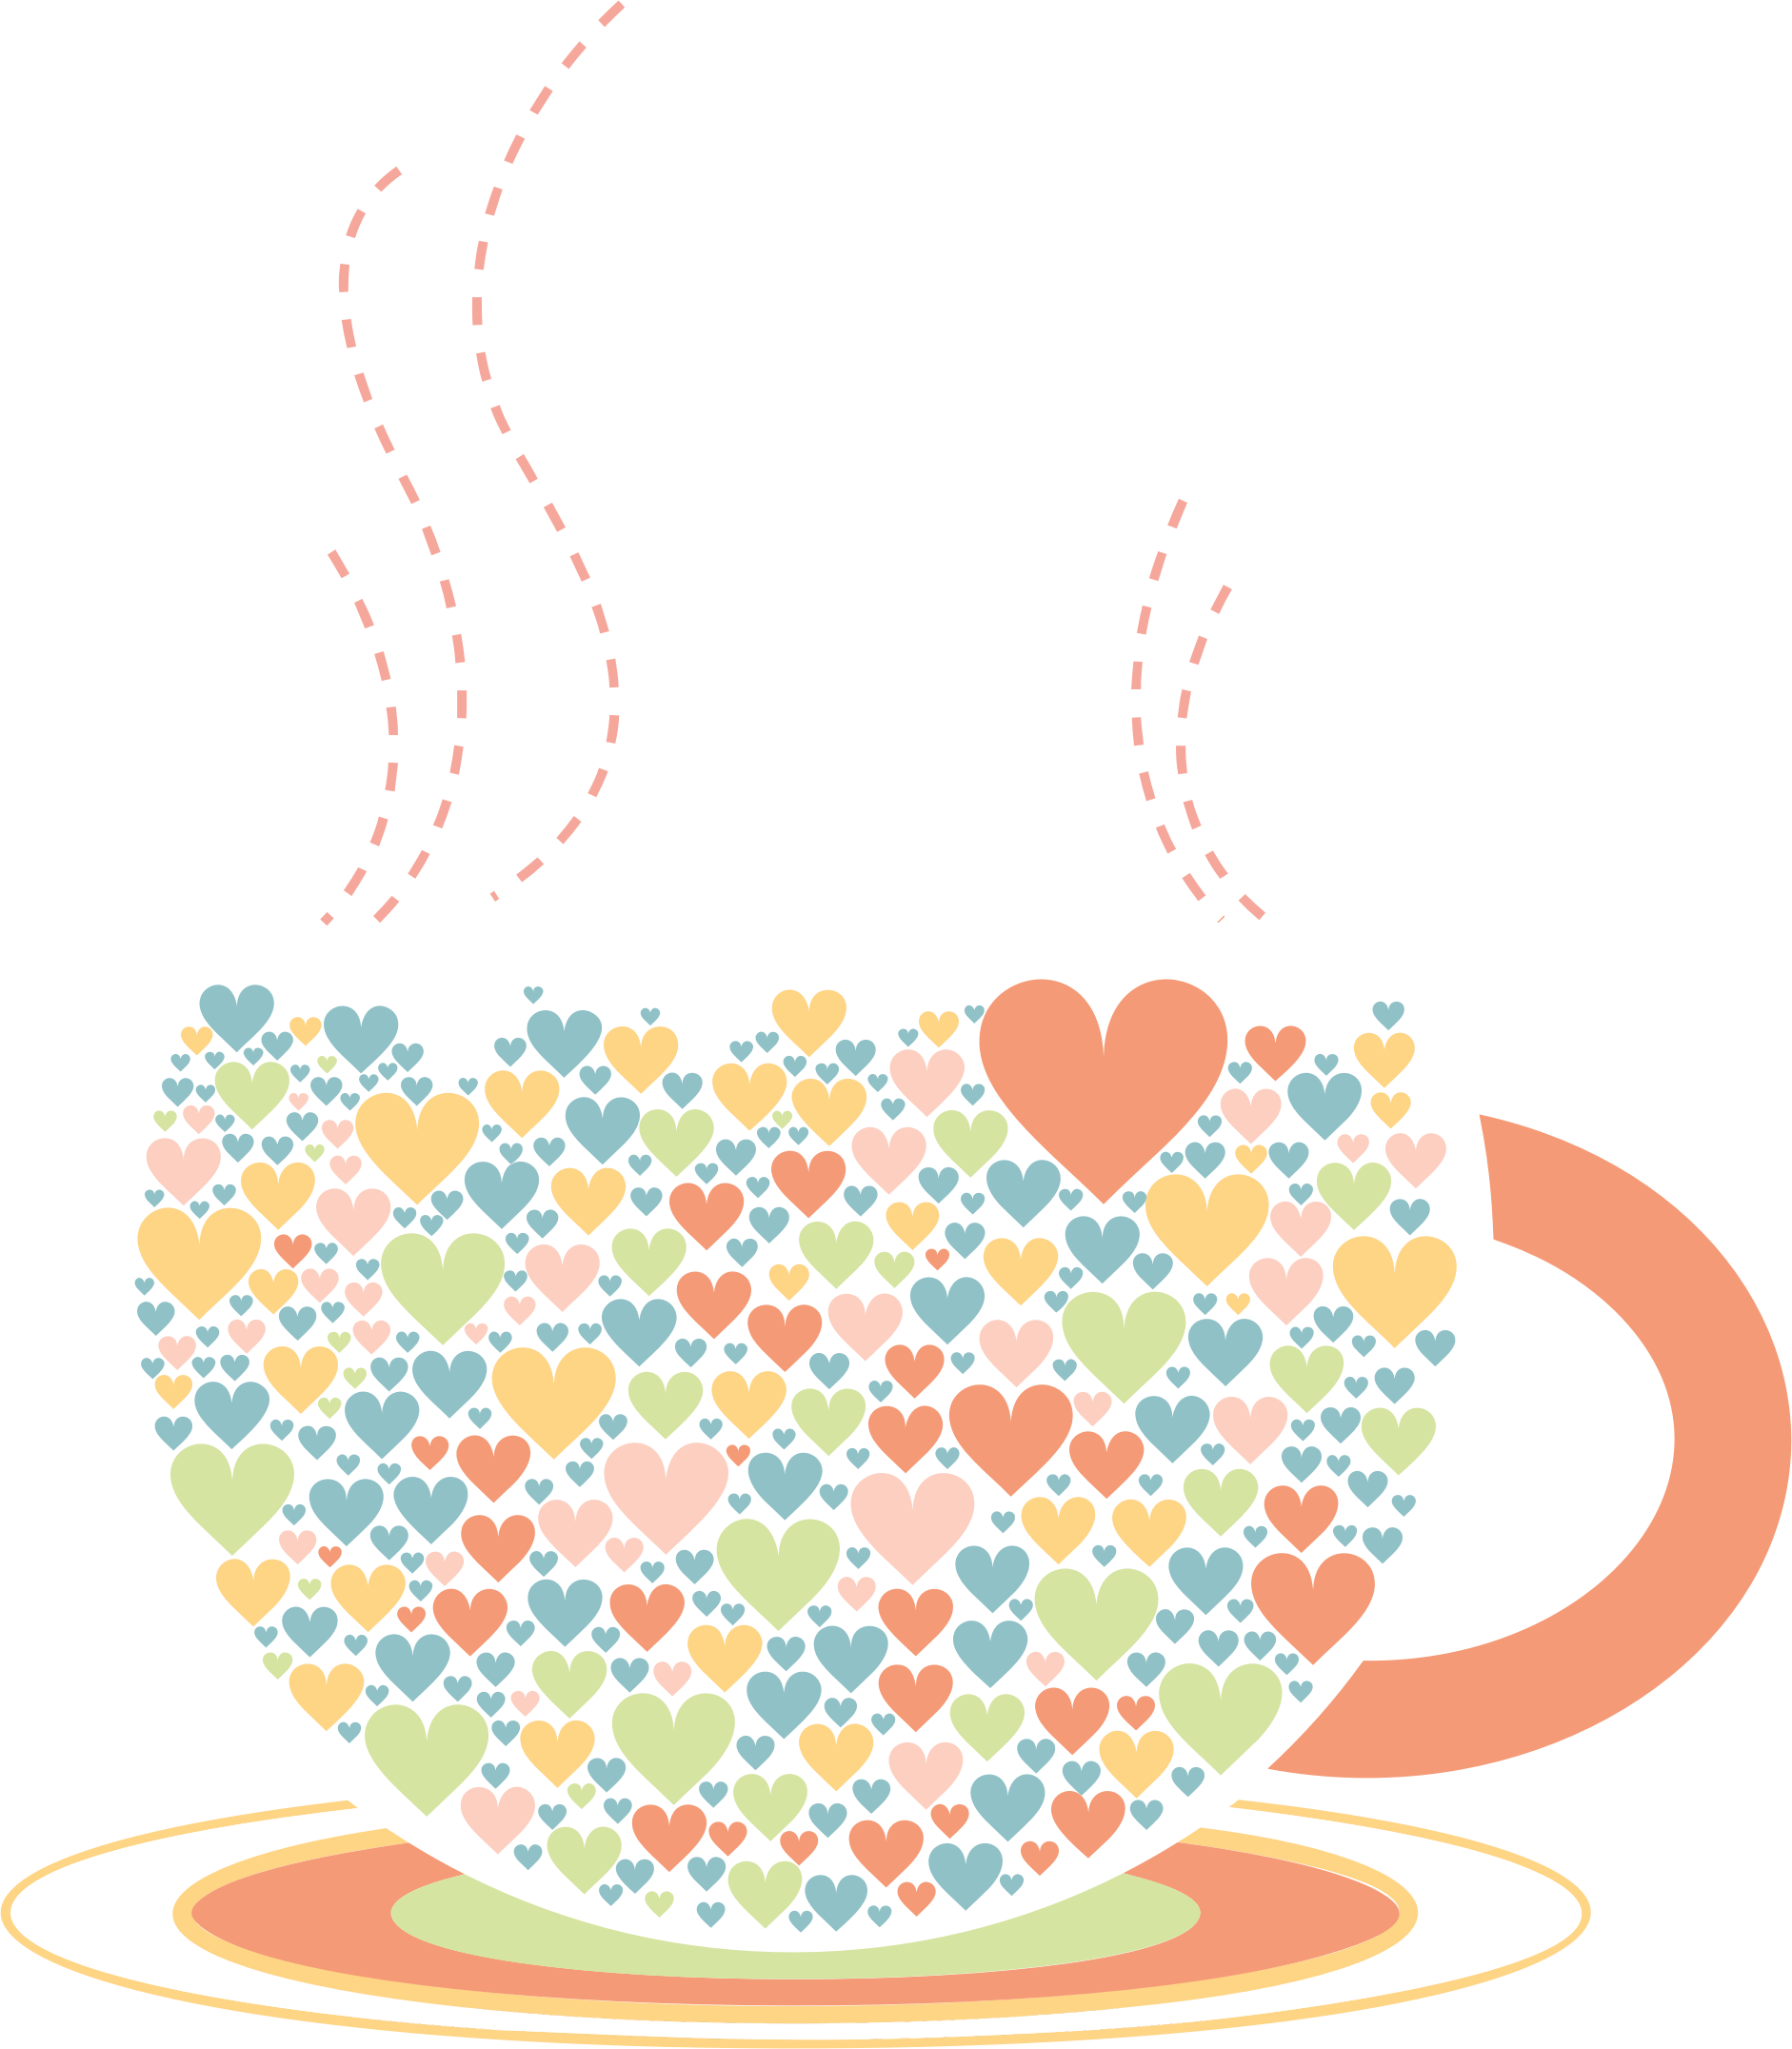 Clipart coffee heart. Love hearts by lin